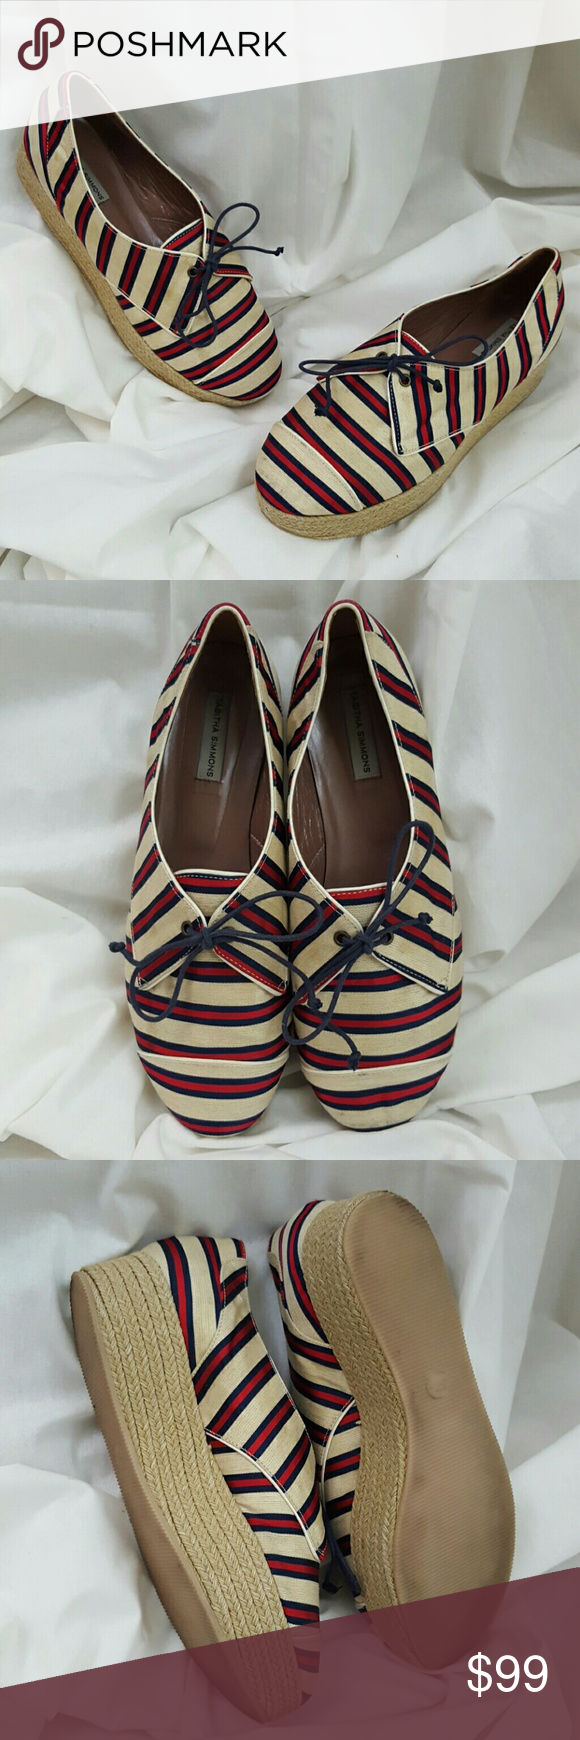 Tabitha Simmons Striped Satin Espadrilles Size 7 These are amazing. Seriously. Jeans to dresses, skinnies or capris....It doesn't matter - these work! They are a beautiful edition to any wardrobe! Tabitha Simmons Shoes Platforms